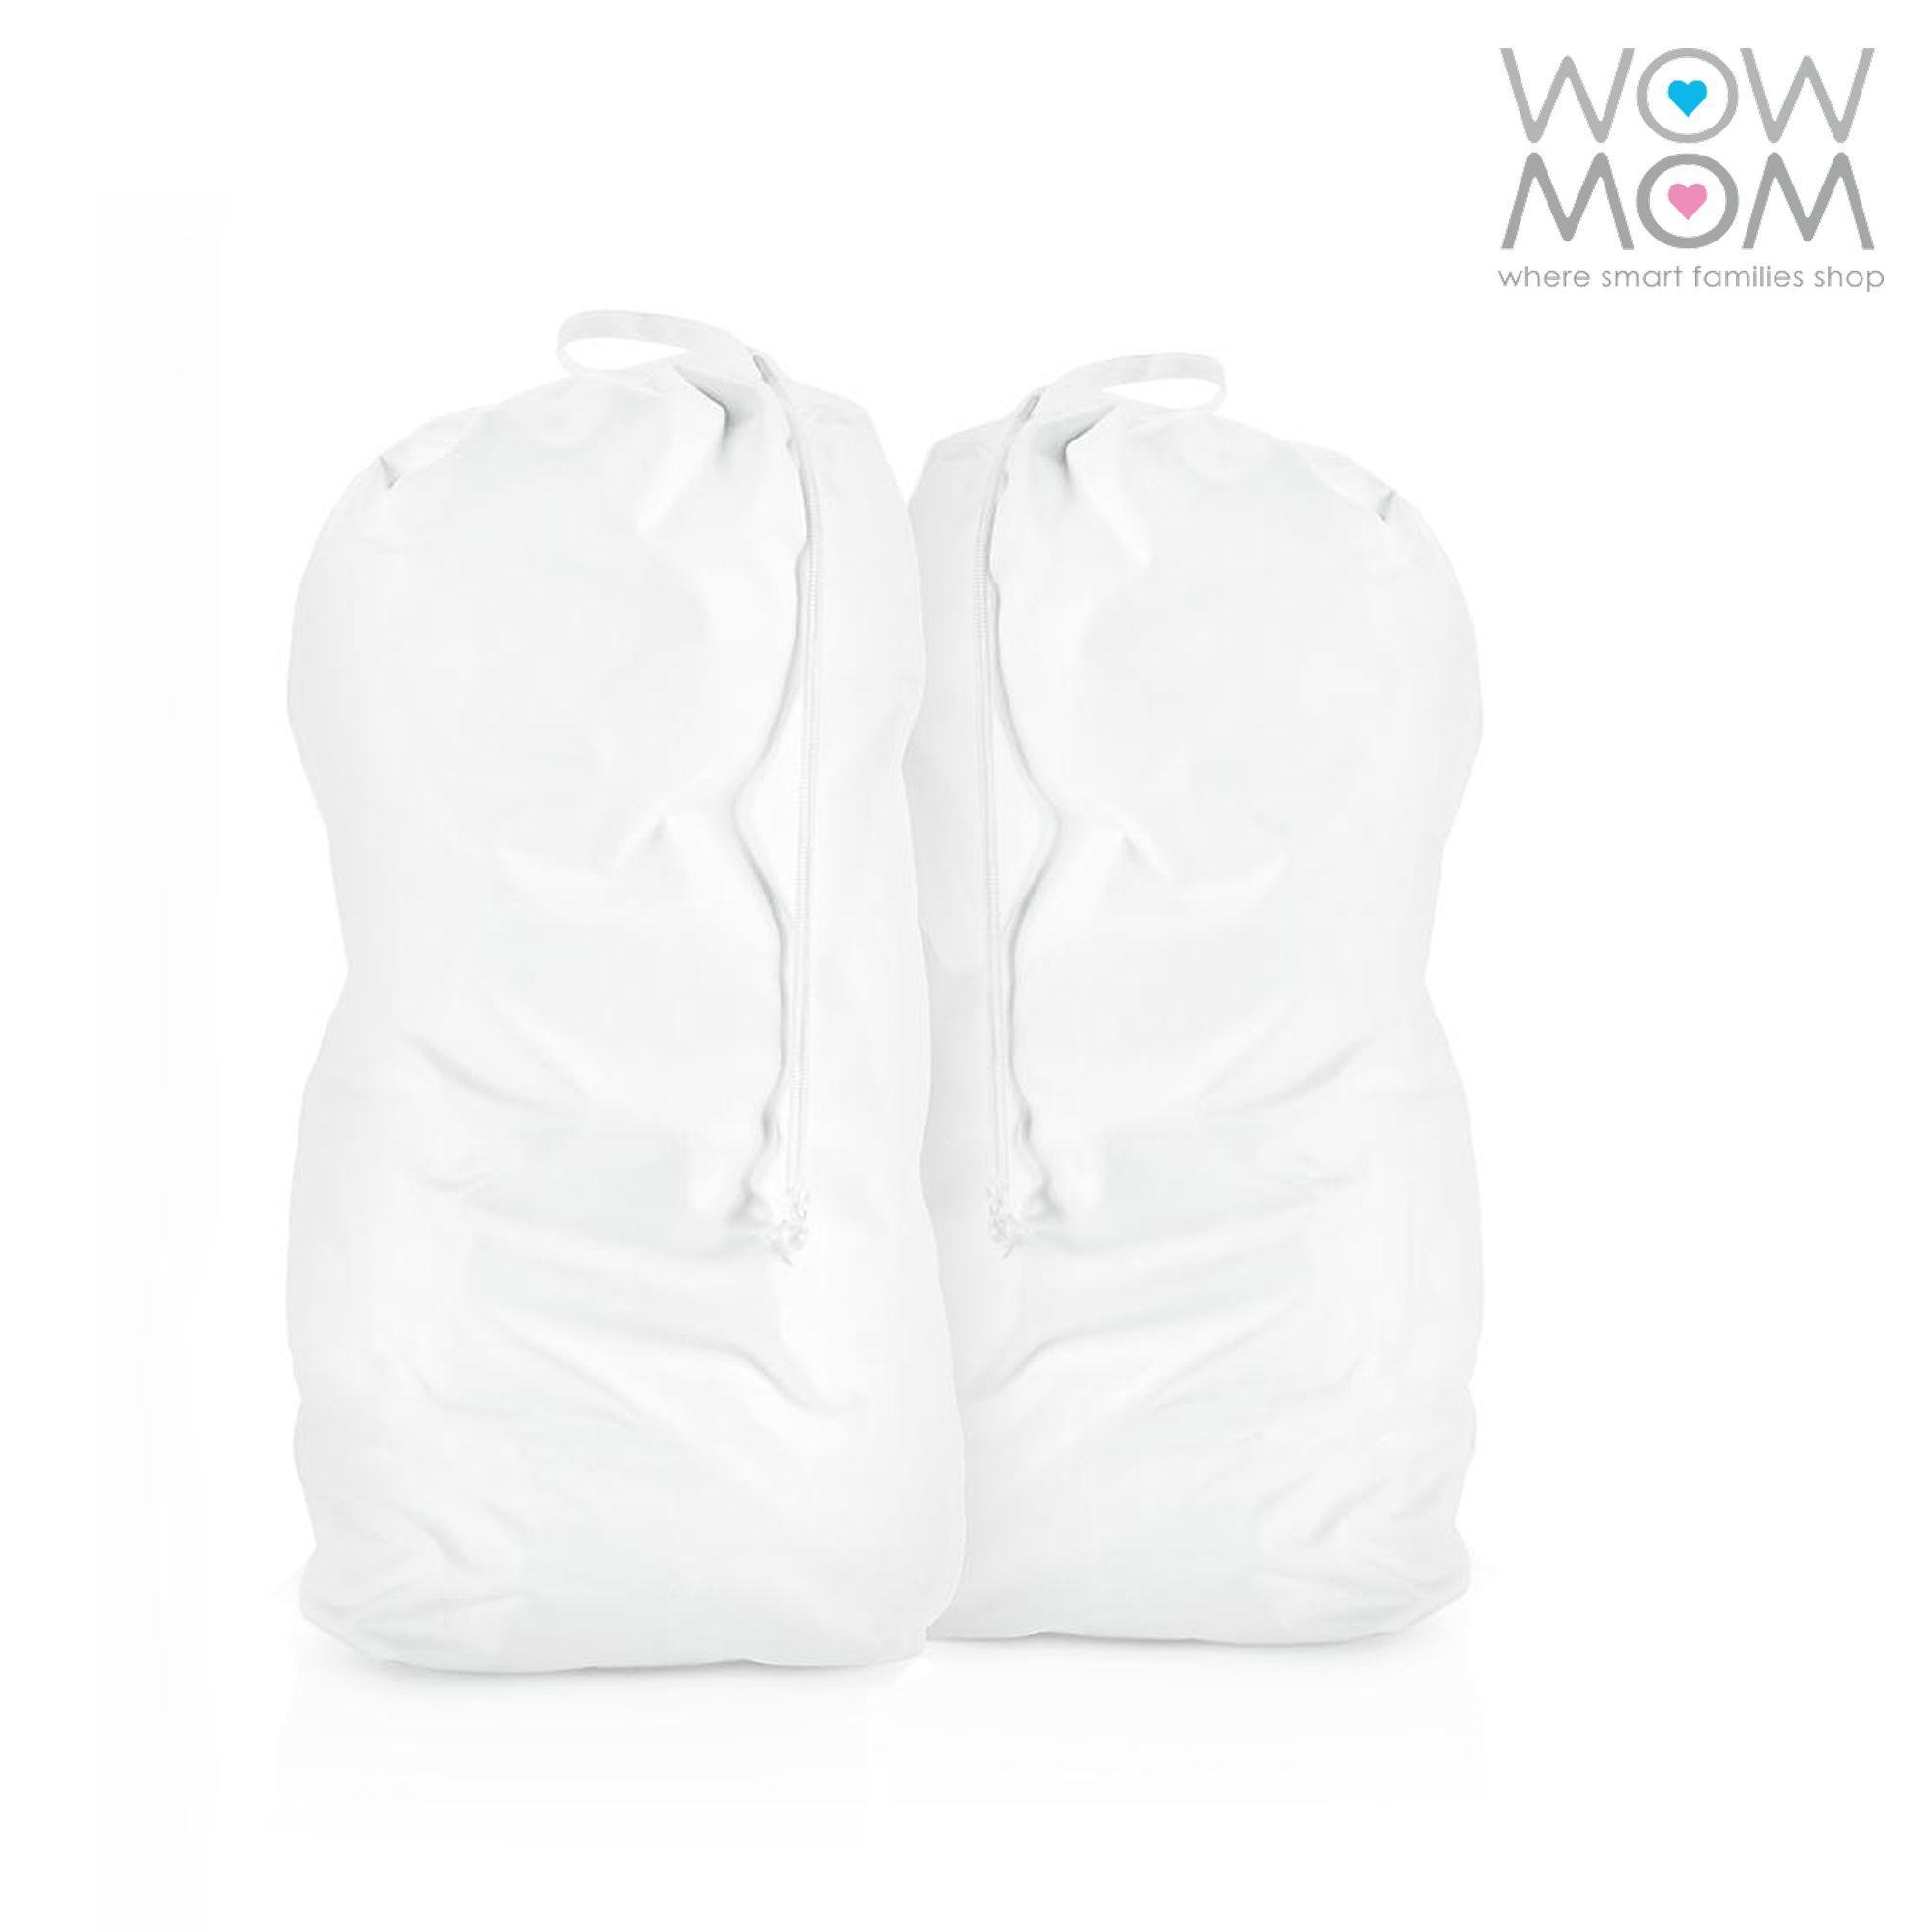 Ubbi Cloth Diaper Pail Liner 2 Pack By Wowmom.